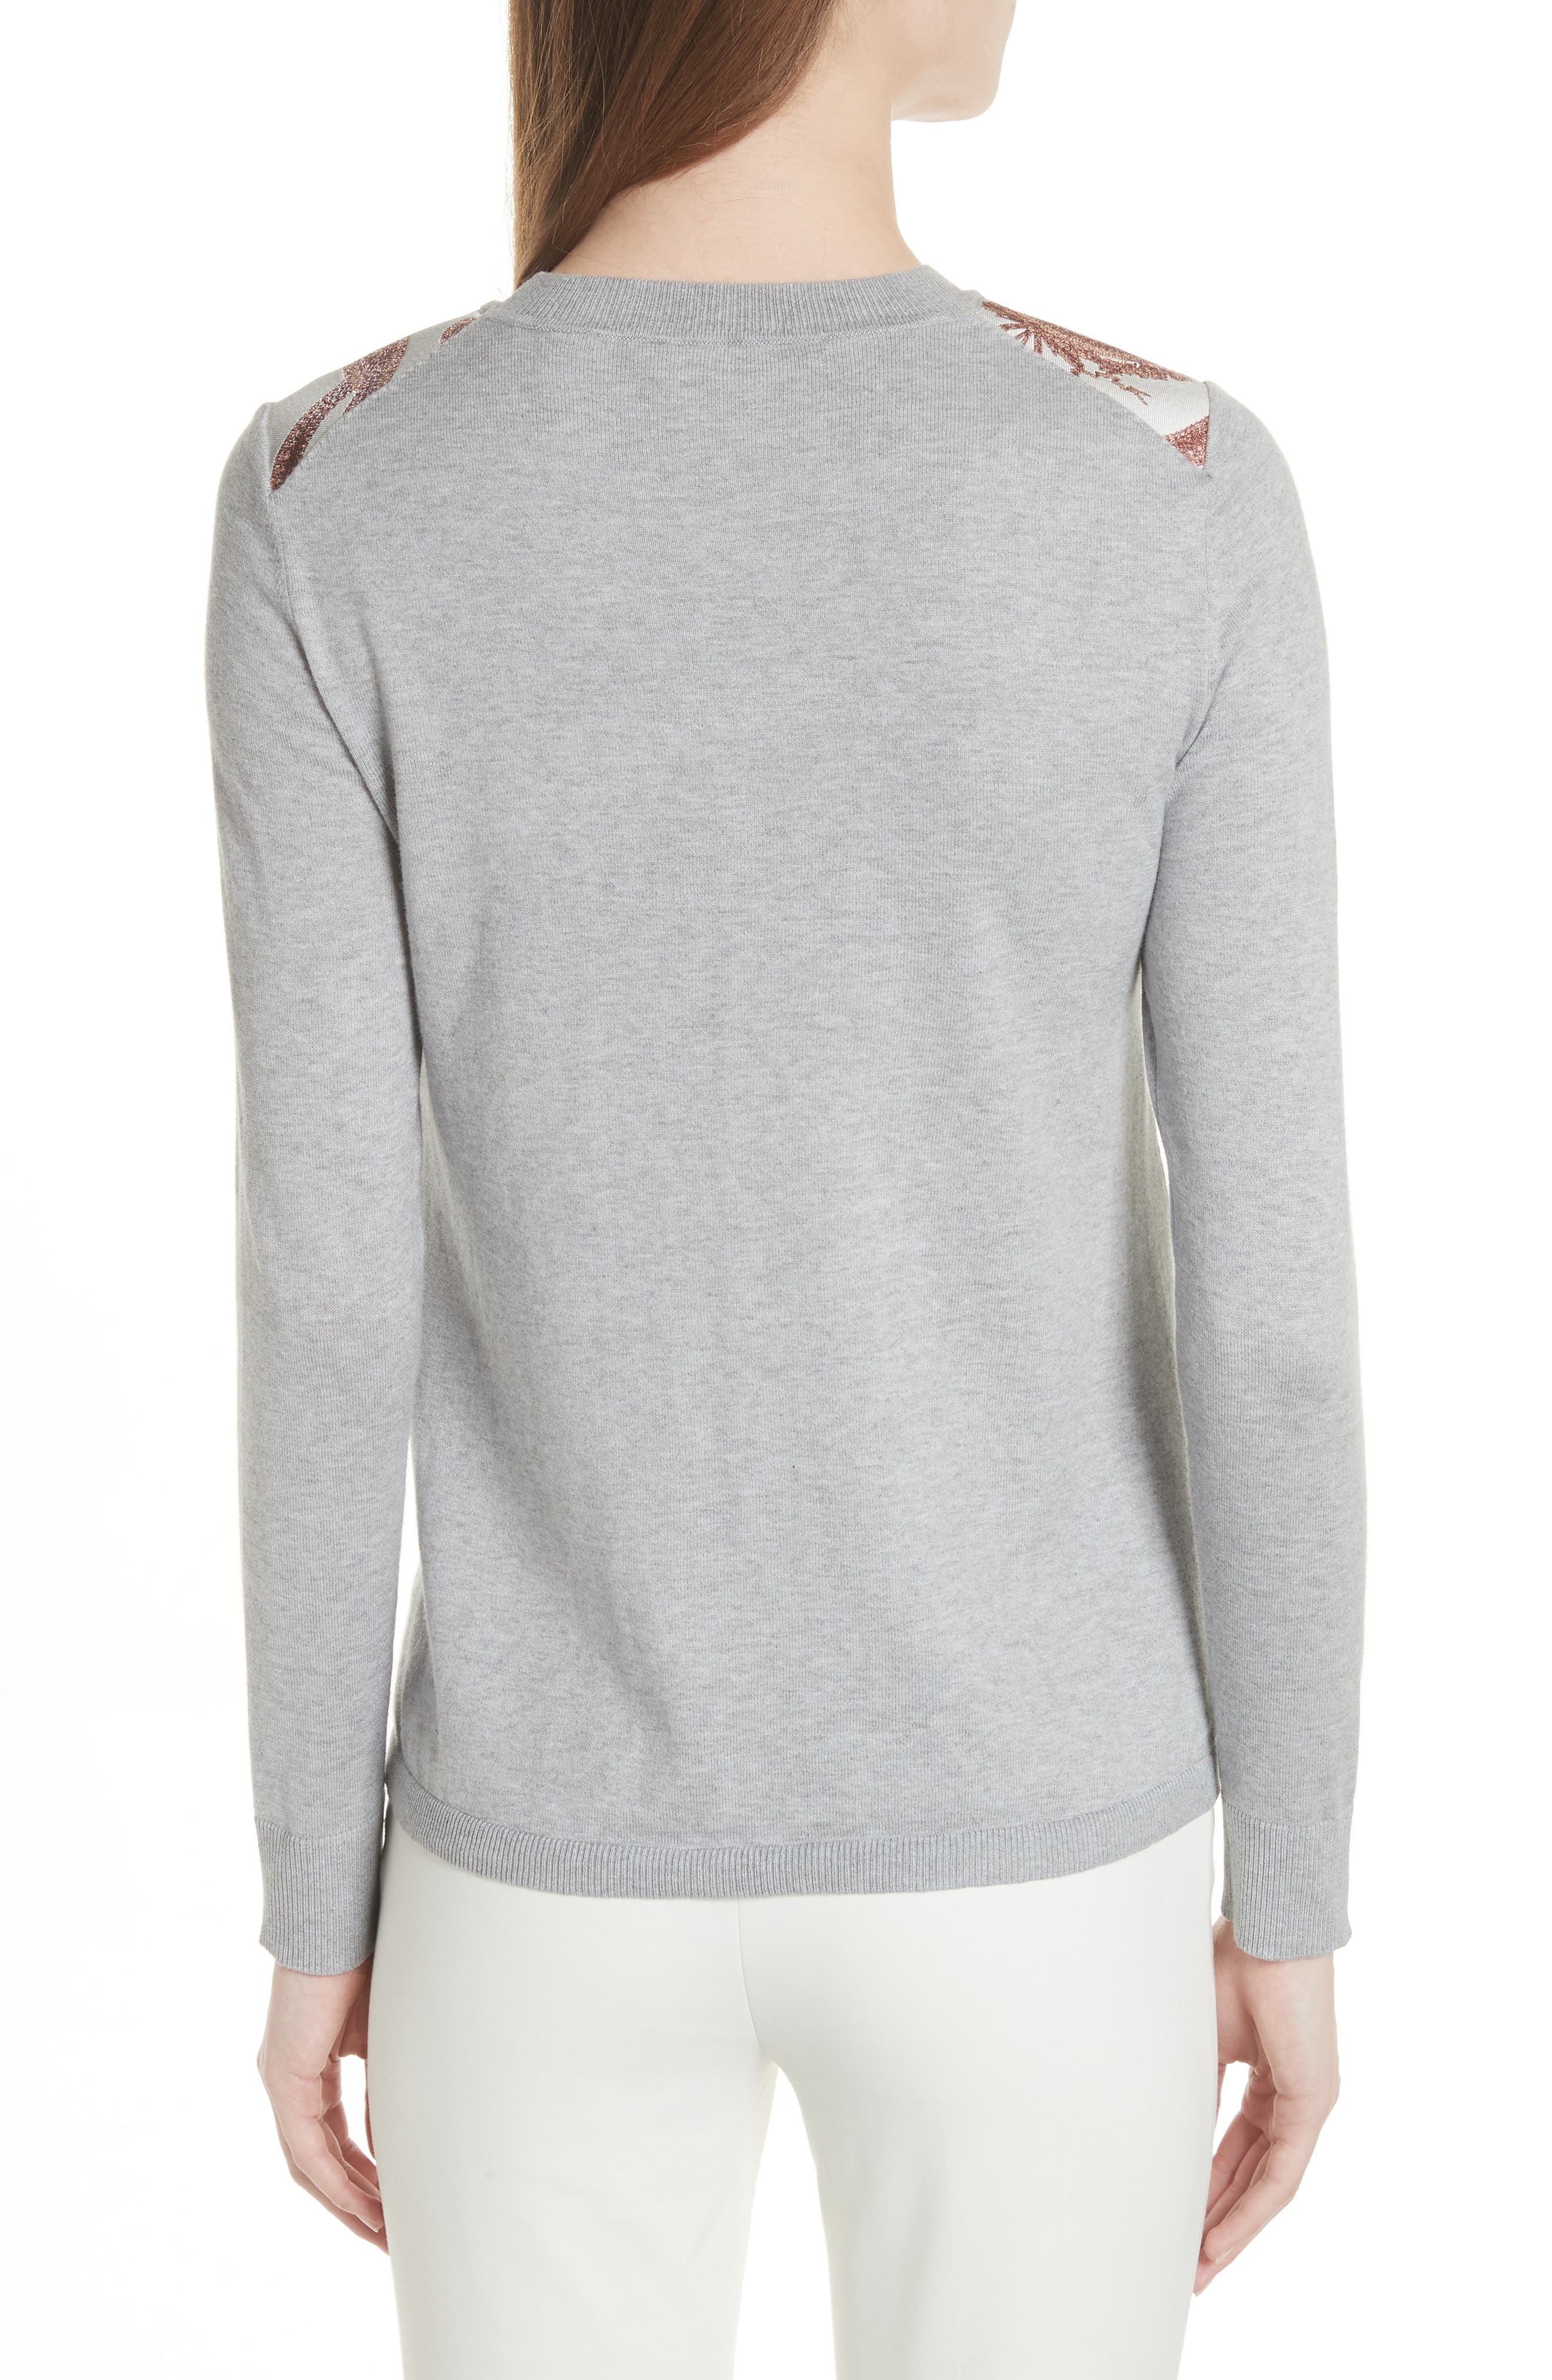 Versailles Jacquard Front Sweater,                             Alternate thumbnail 2, color,                             Light Grey